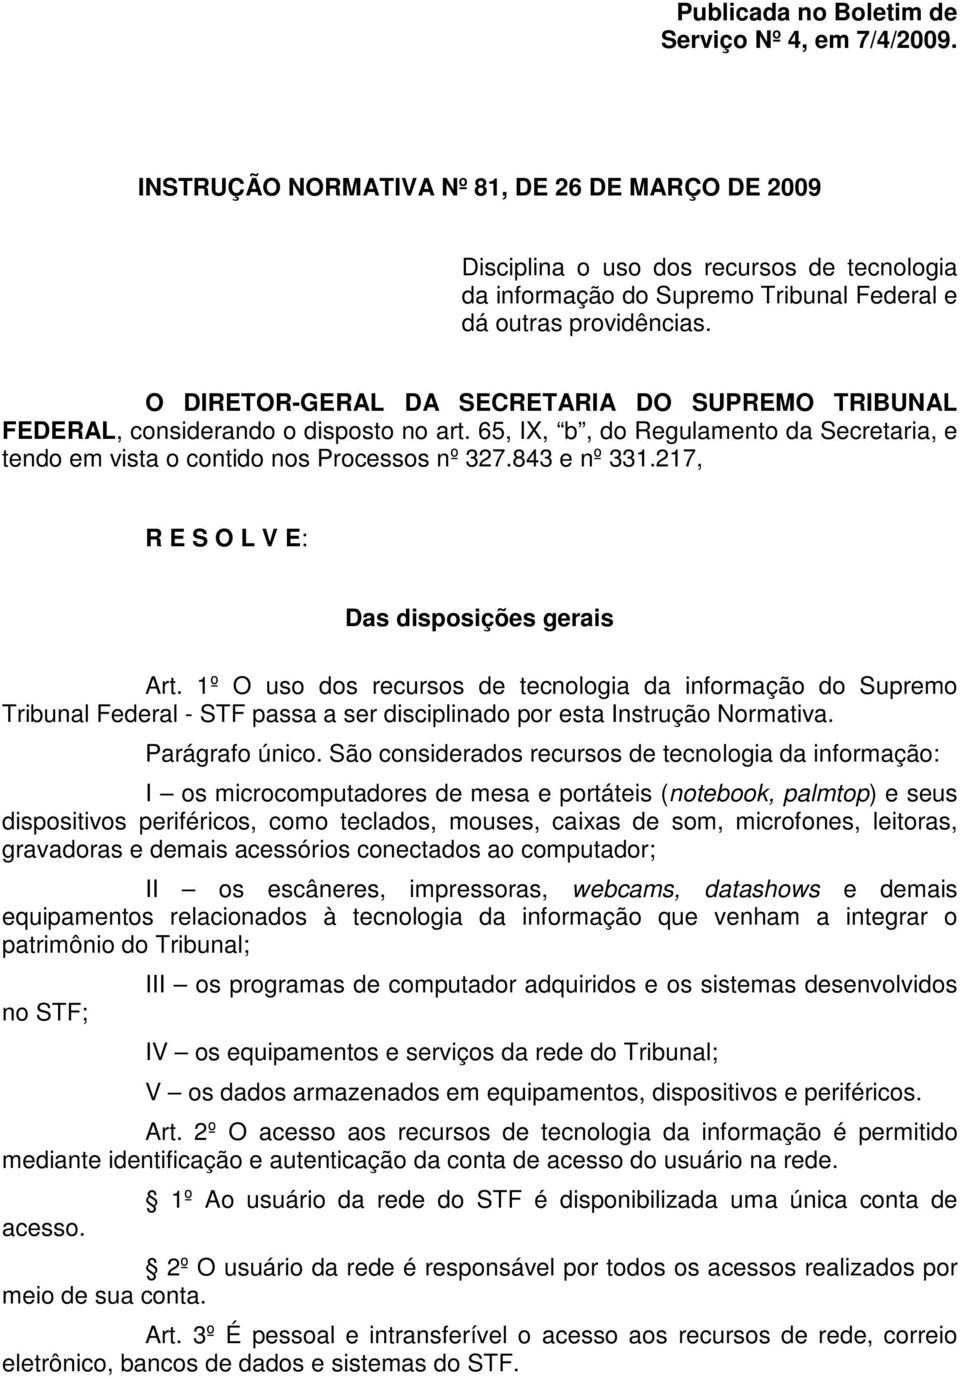 O DIRETOR-GERAL DA SECRETARIA DO SUPREMO TRIBUNAL FEDERAL, considerando o disposto no art. 65, IX, b, do Regulamento da Secretaria, e tendo em vista o contido nos Processos nº 327.843 e nº 331.